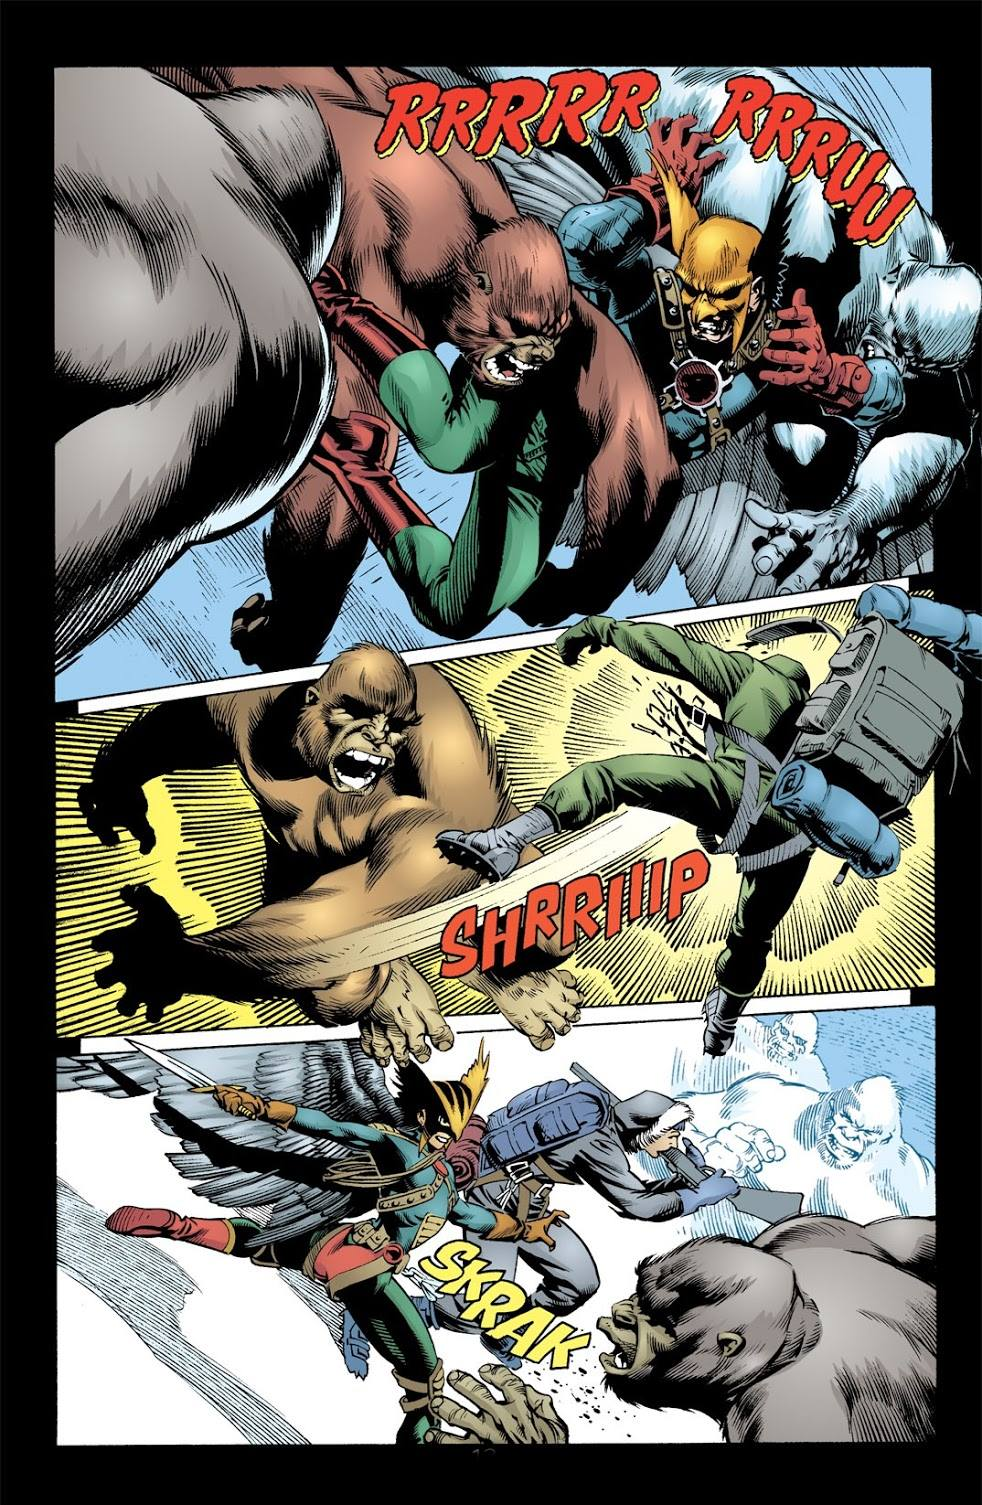 Hawkman Allies and Enemies review